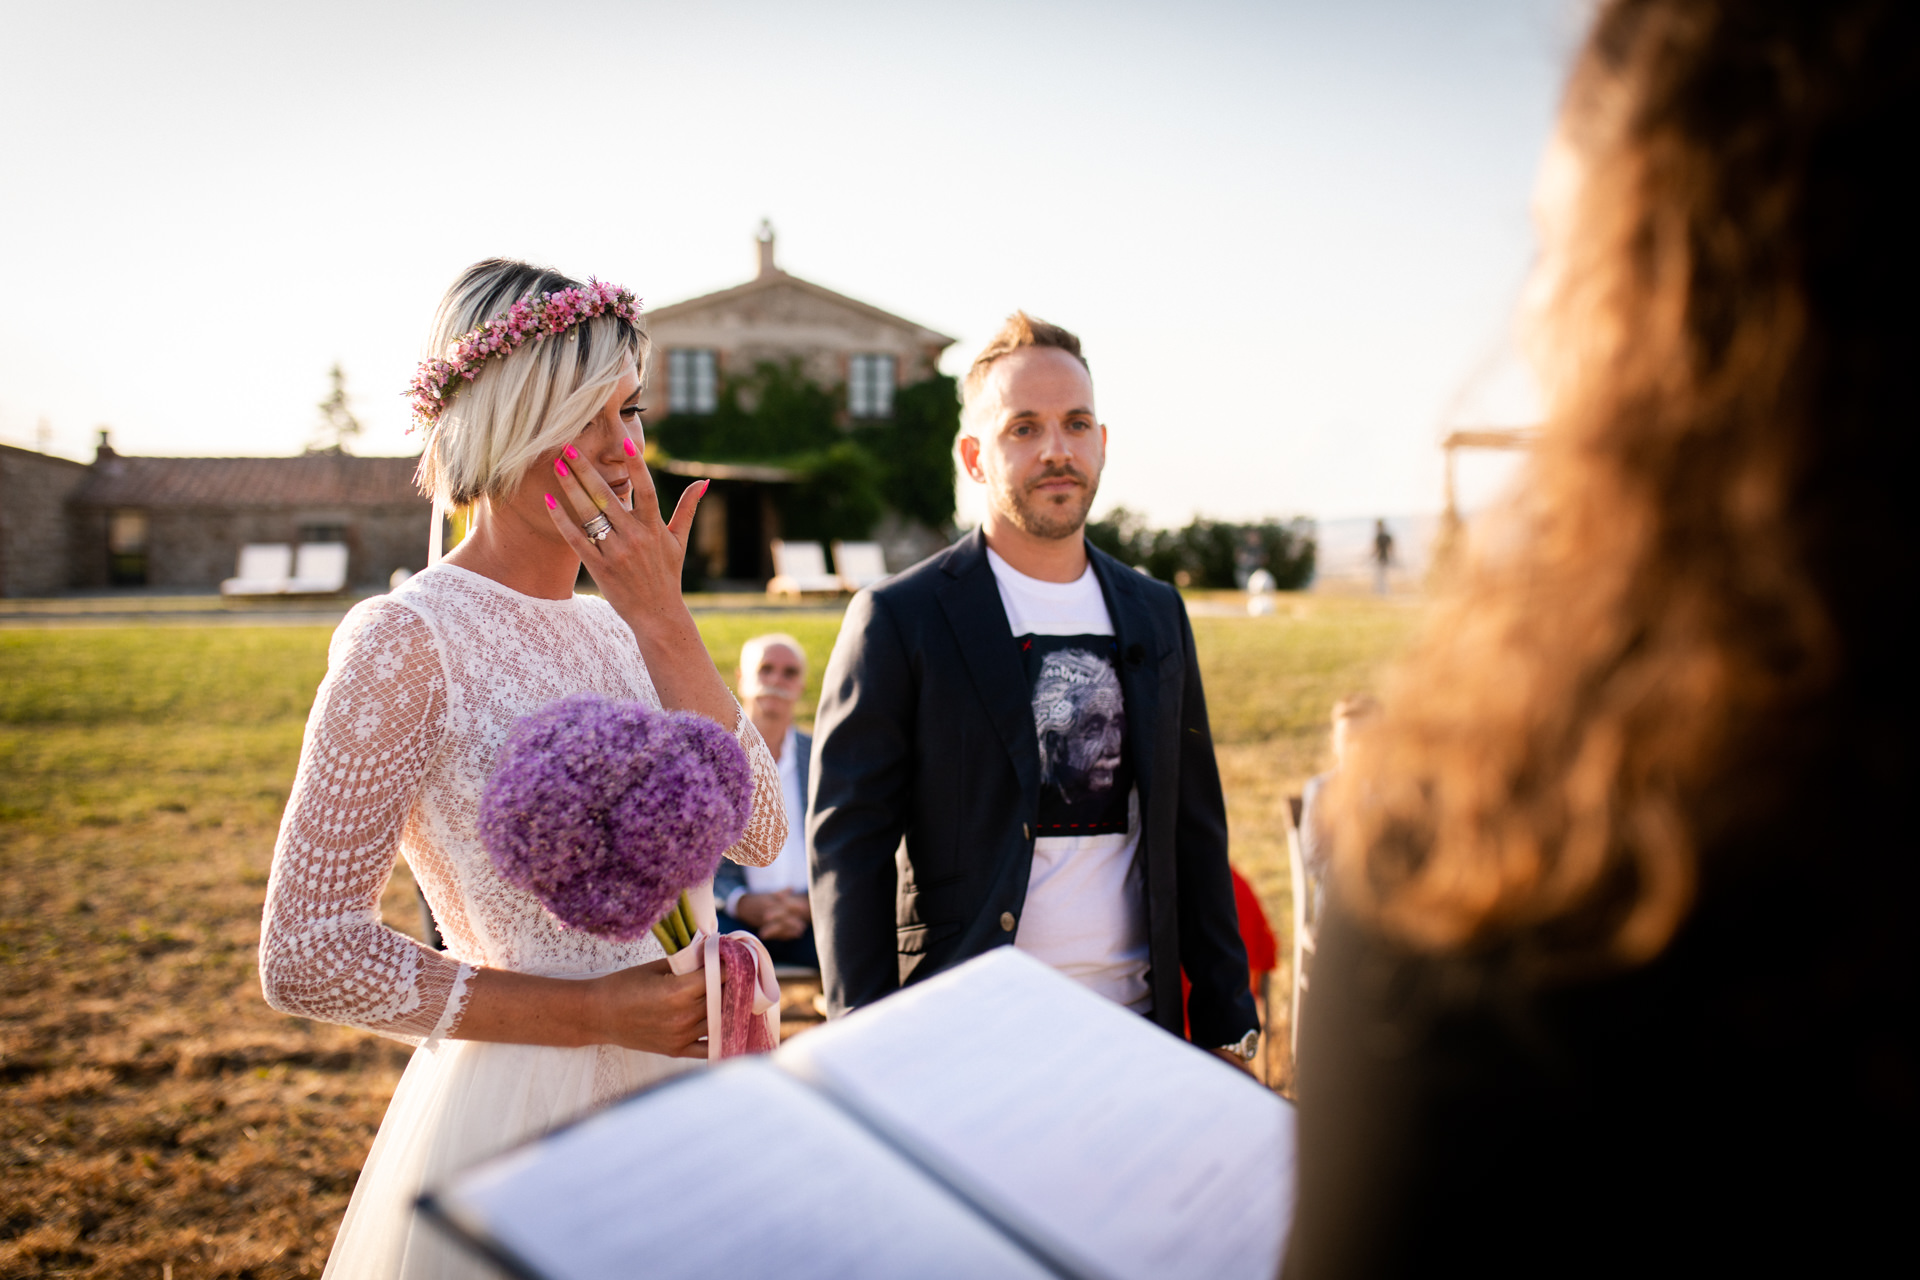 Tuscany IT, Elopement Wedding Image | The bride is crying at the beginning of the outdoor ceremony in the countryside.